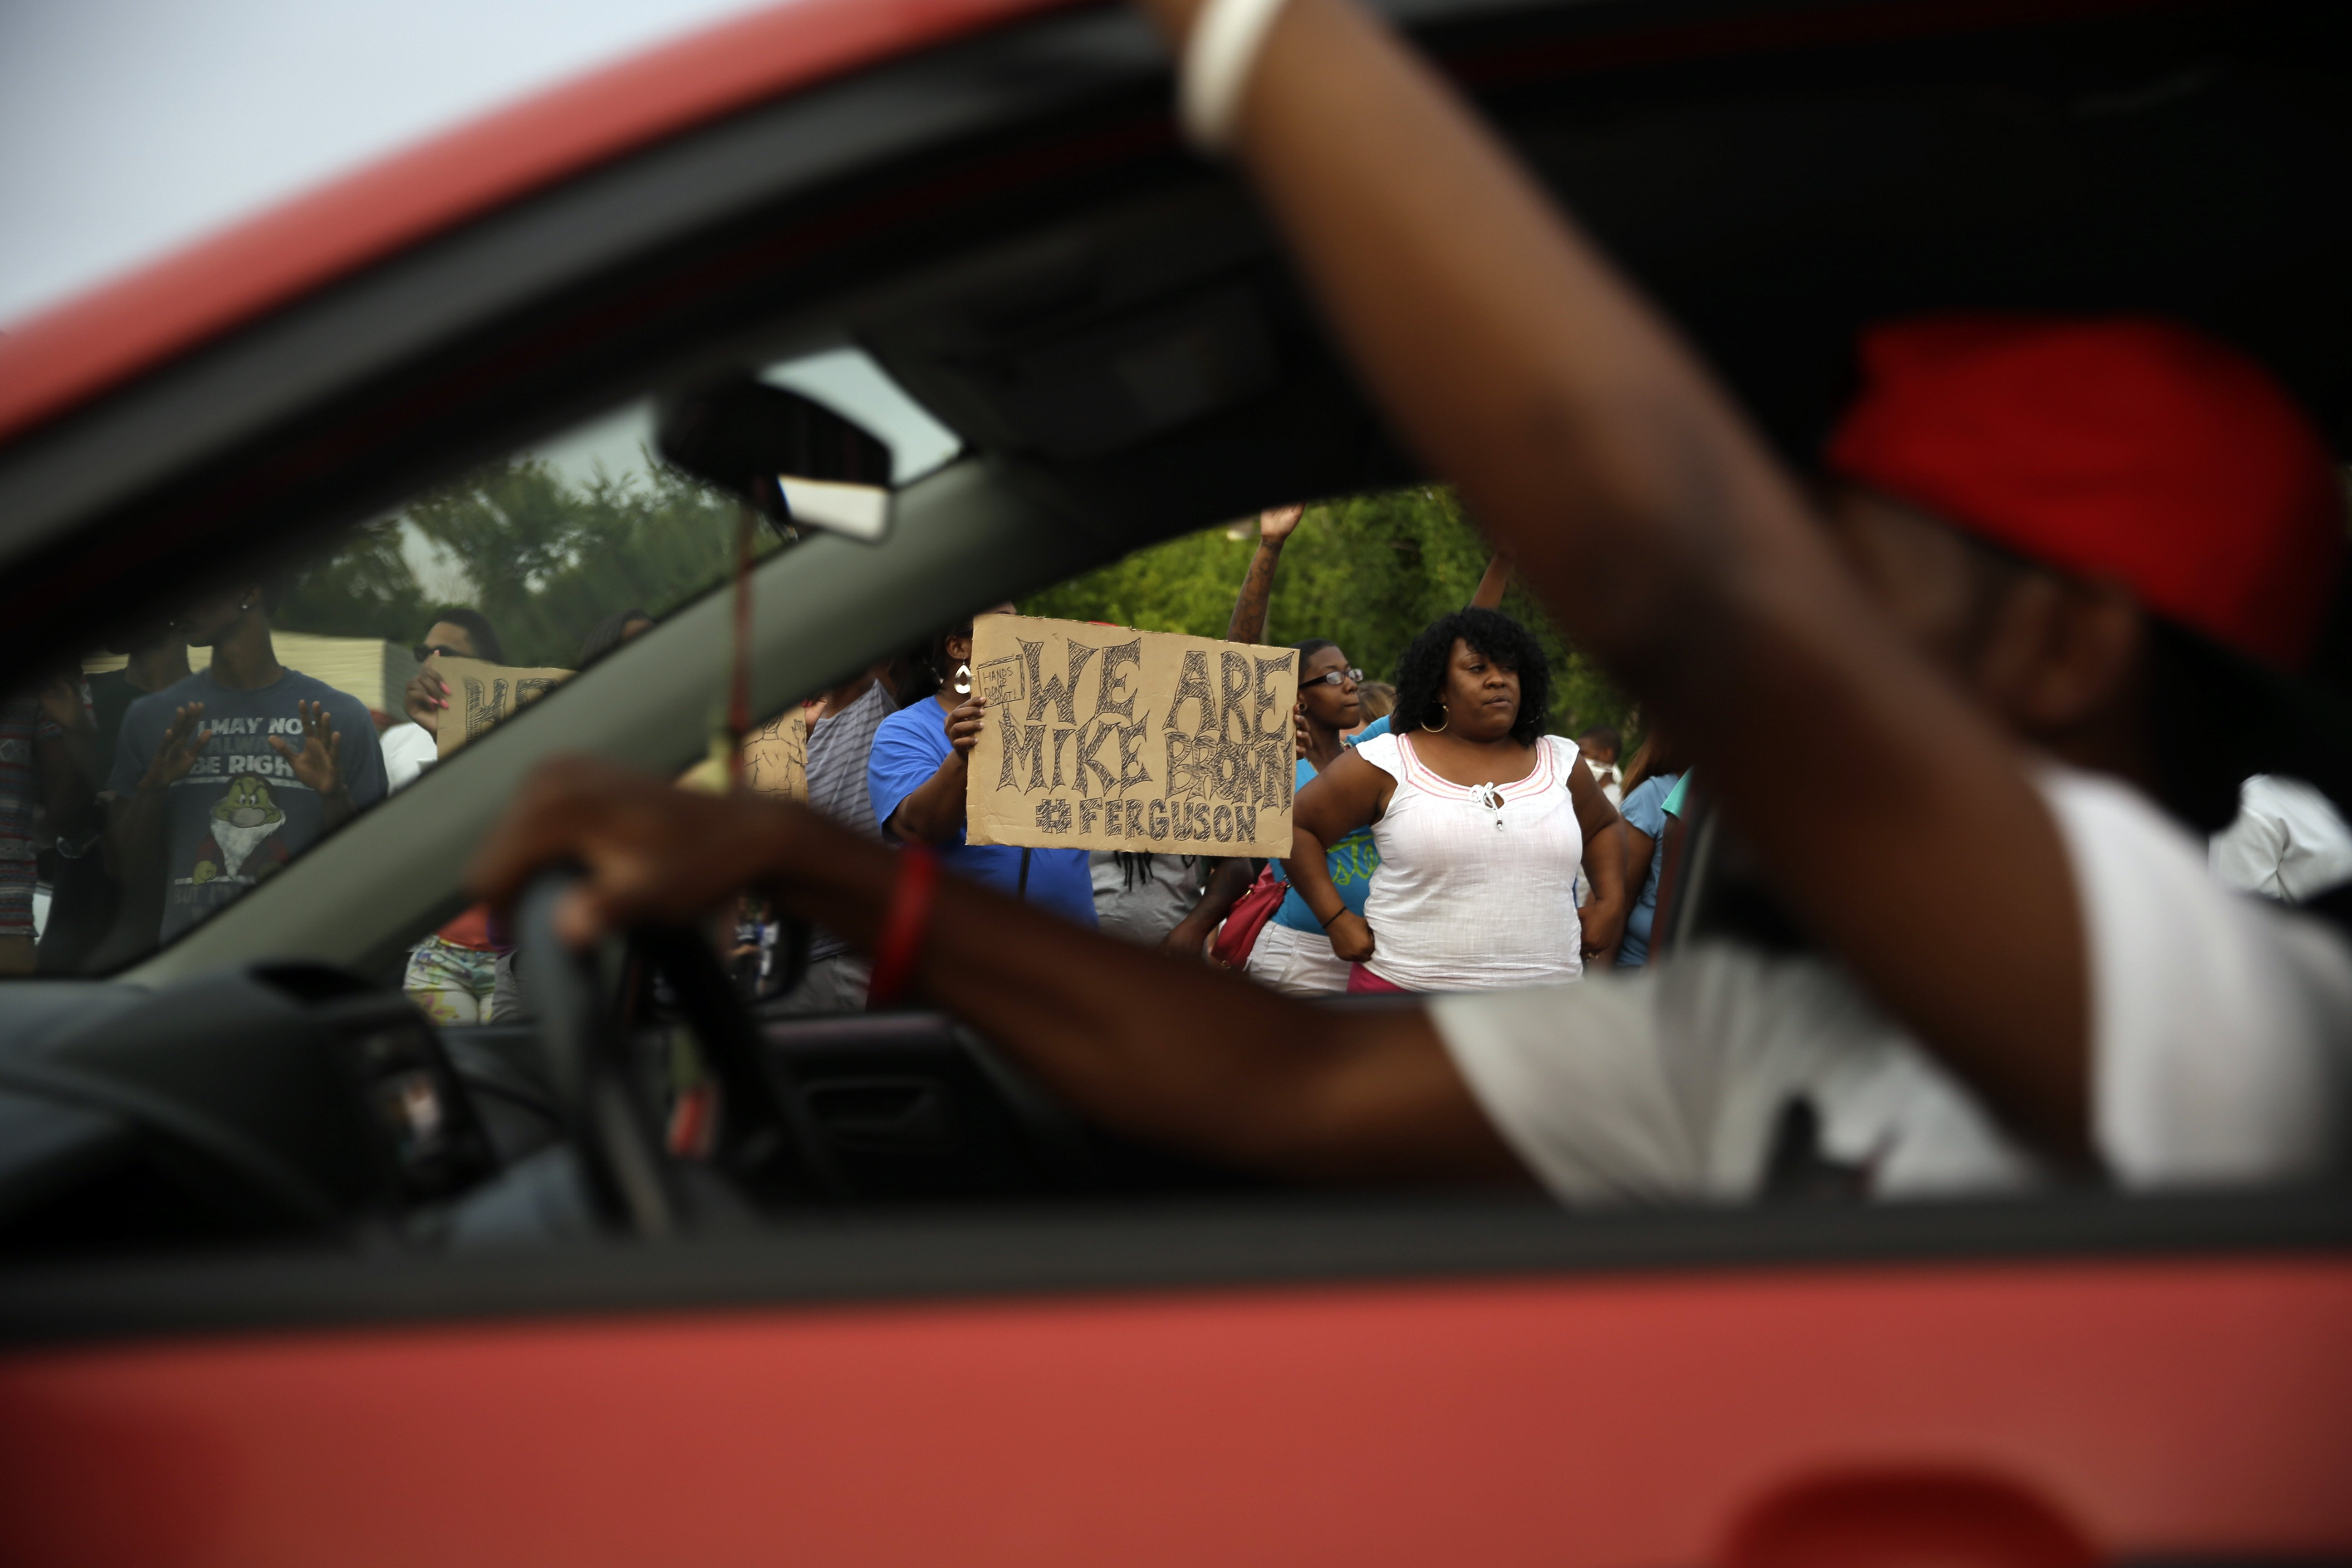 Demonstrators hold signs as traffic slowly moves past Thursday, Aug. 14, 2014, in Ferguson, Mo. Hundreds of people protesting the death of  Michael Brown marched through the streets of Ferguson alongside state troopers Thursday.